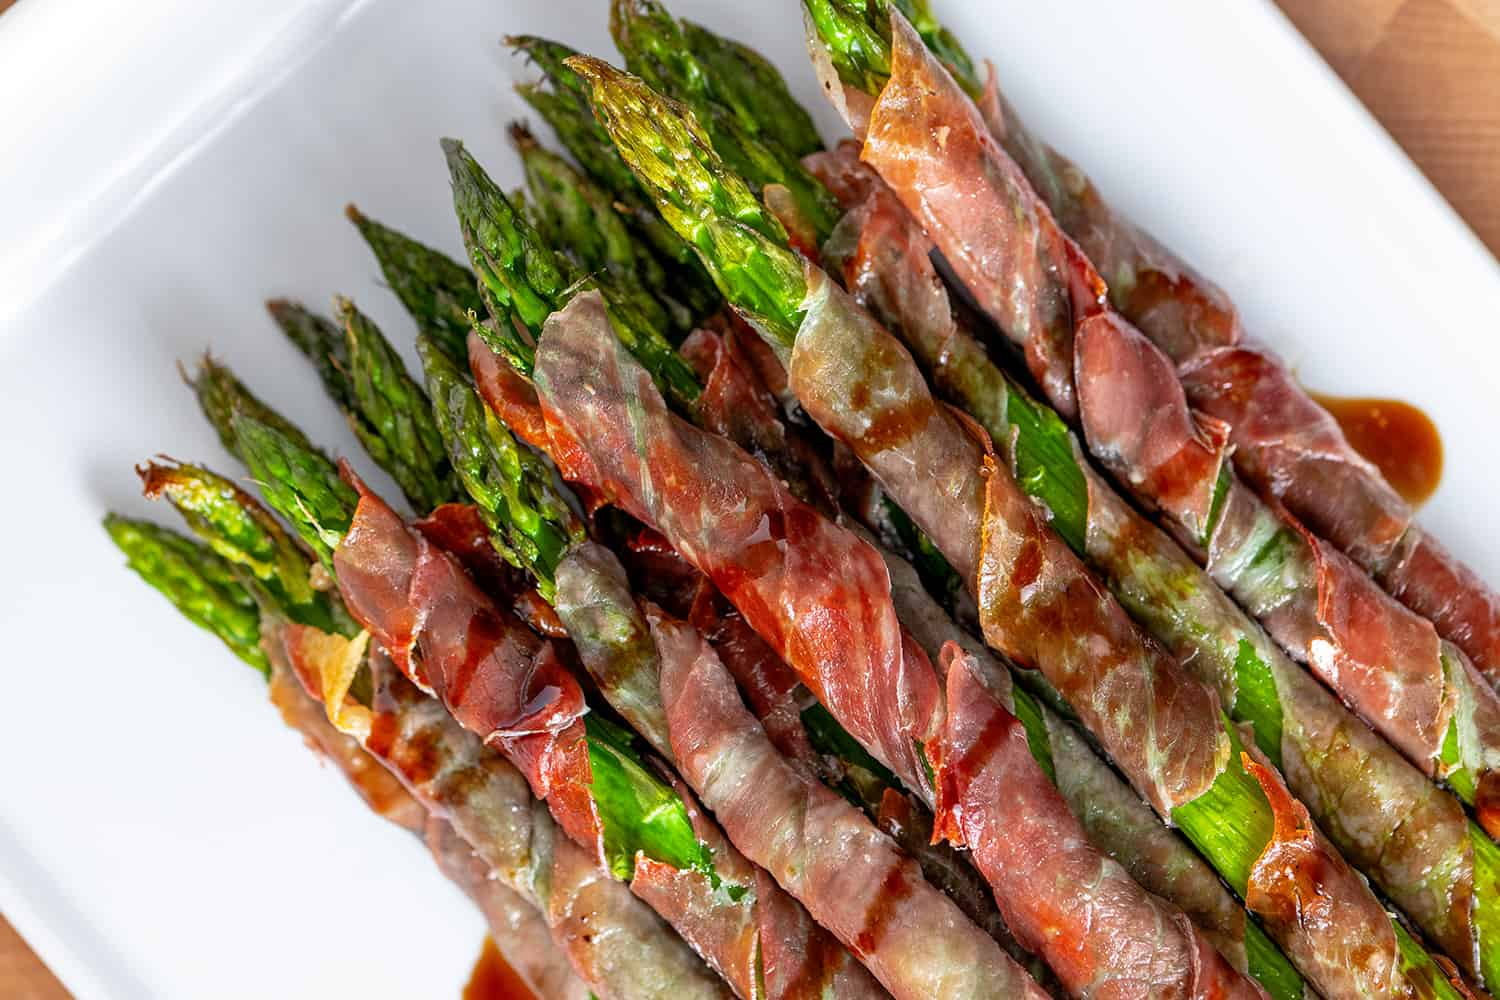 An overhead shot of a plate of Whole30 and paleo prosciutto wrapped asparagus drizzled with balsamic vinegar.